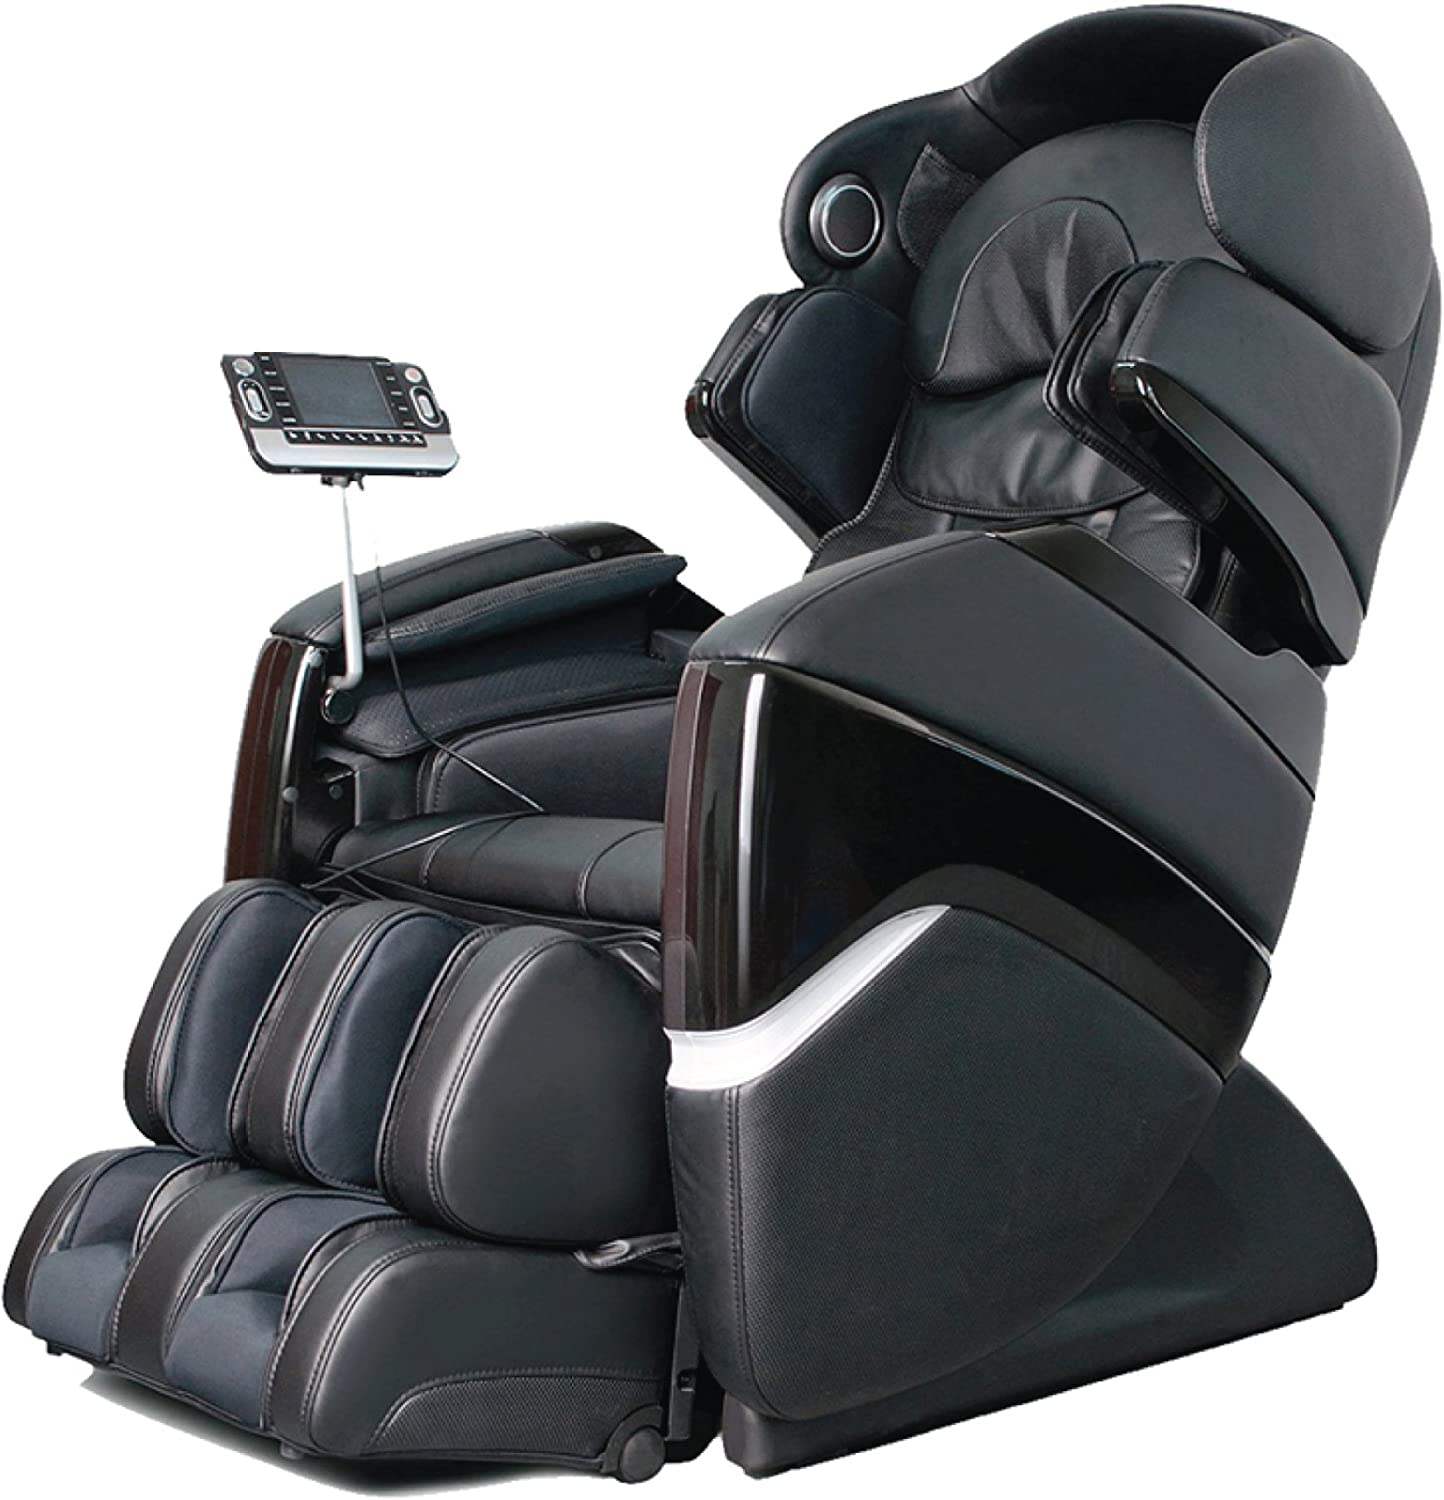 OSAKI OS-3D PRO Cyber Zero Gravity Heated Massage Chair, Black